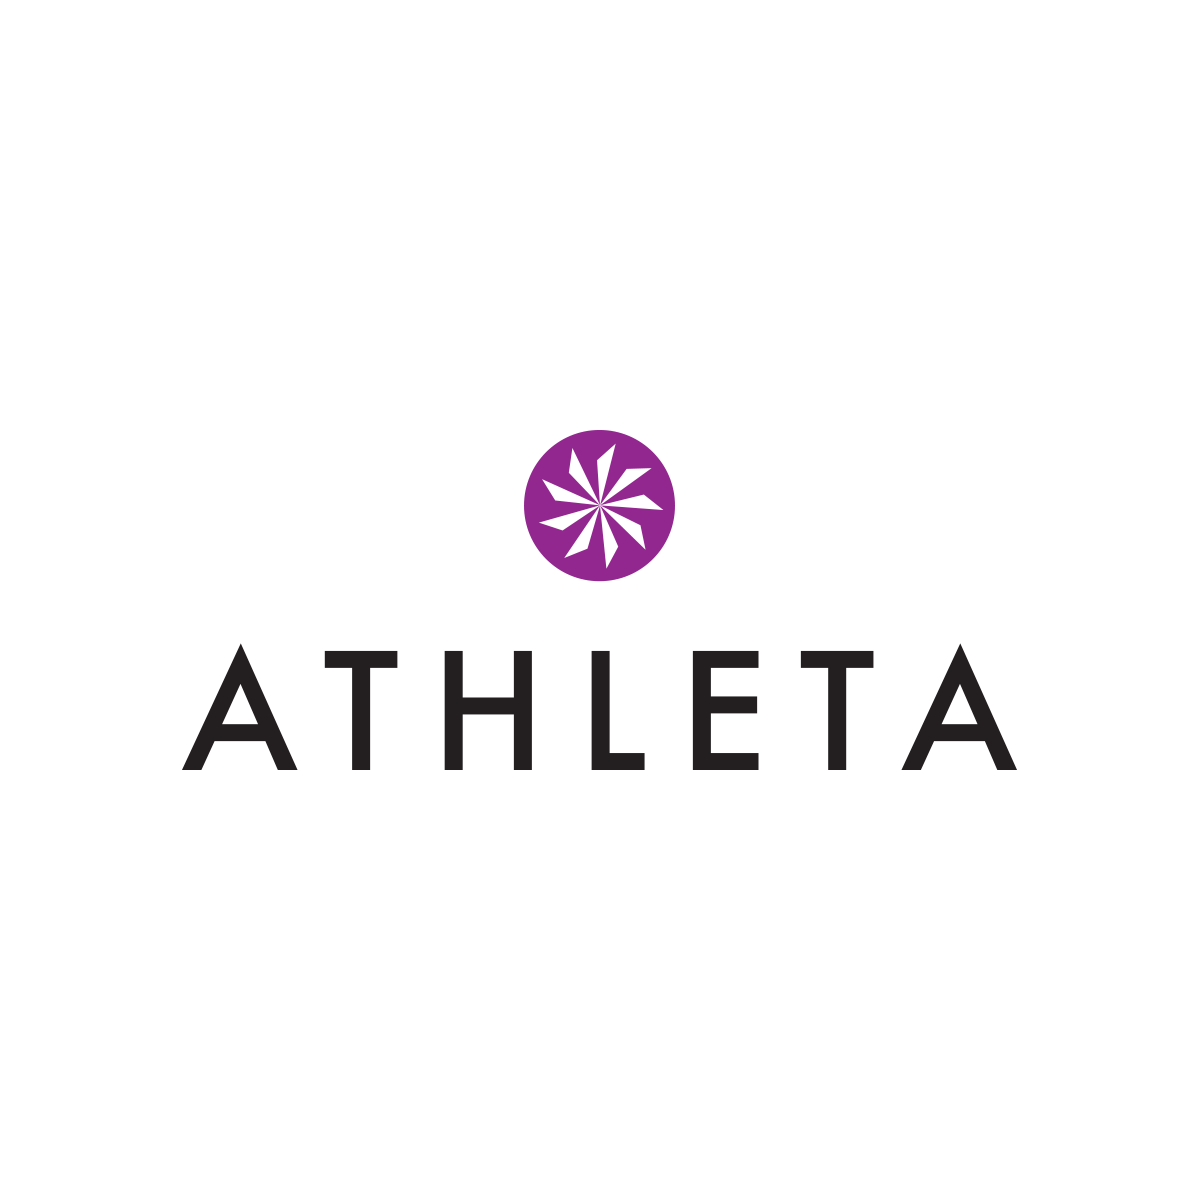 Athlete logotype